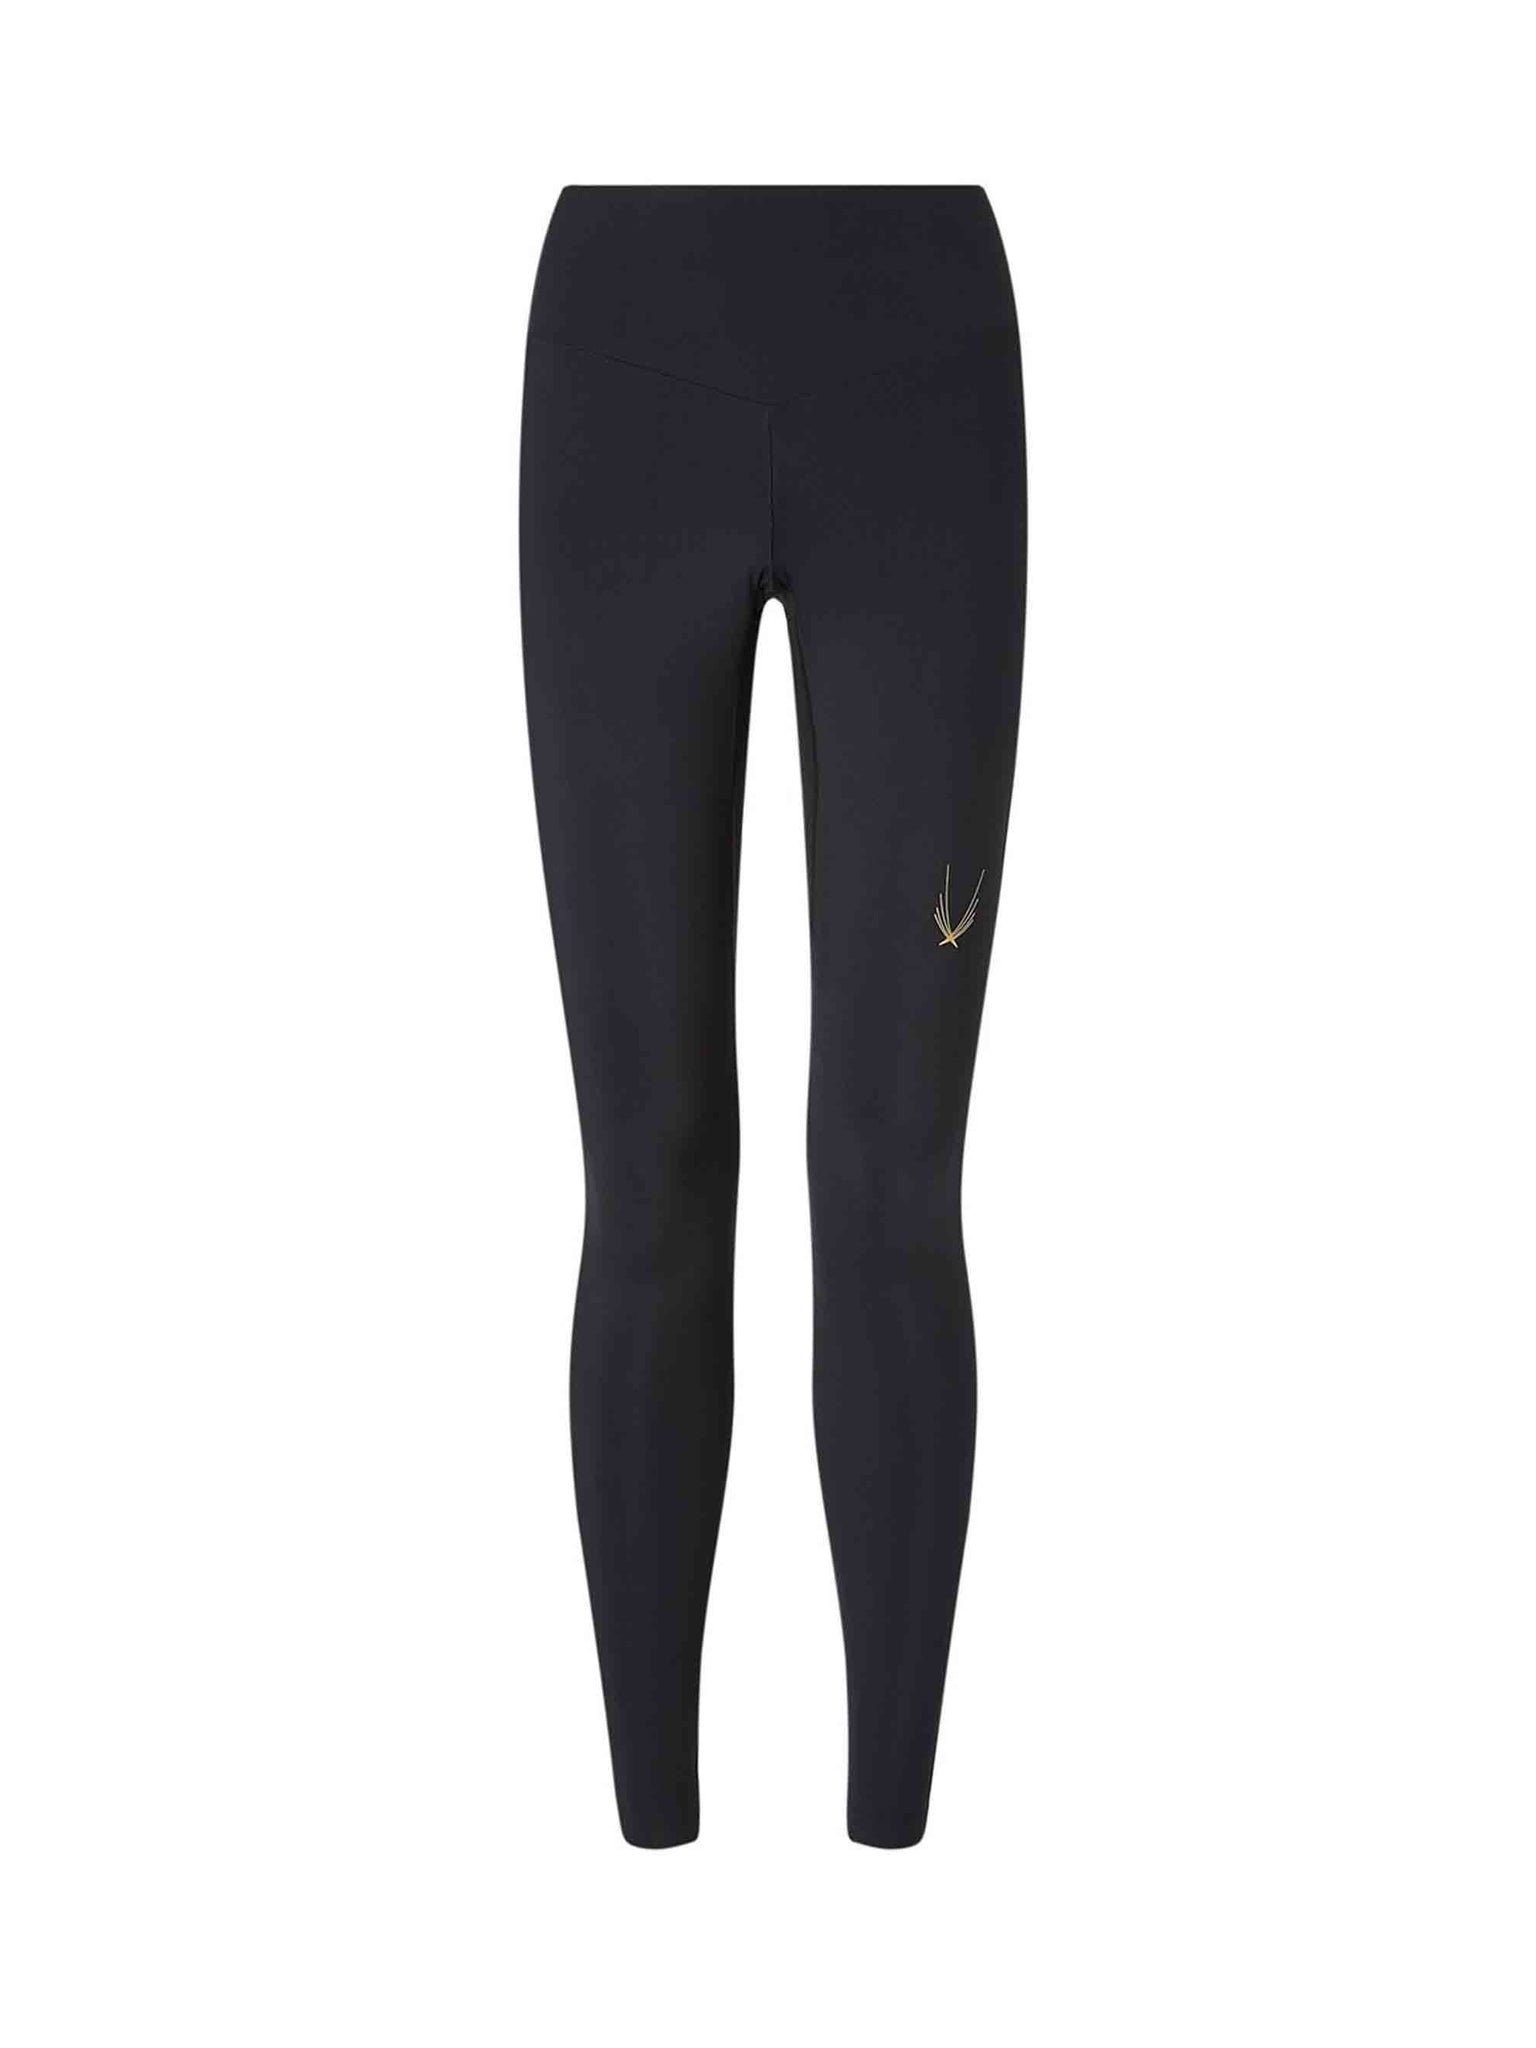 svelte leggings by lucas hugh in black, with bonded waistband and concealed zip pocket